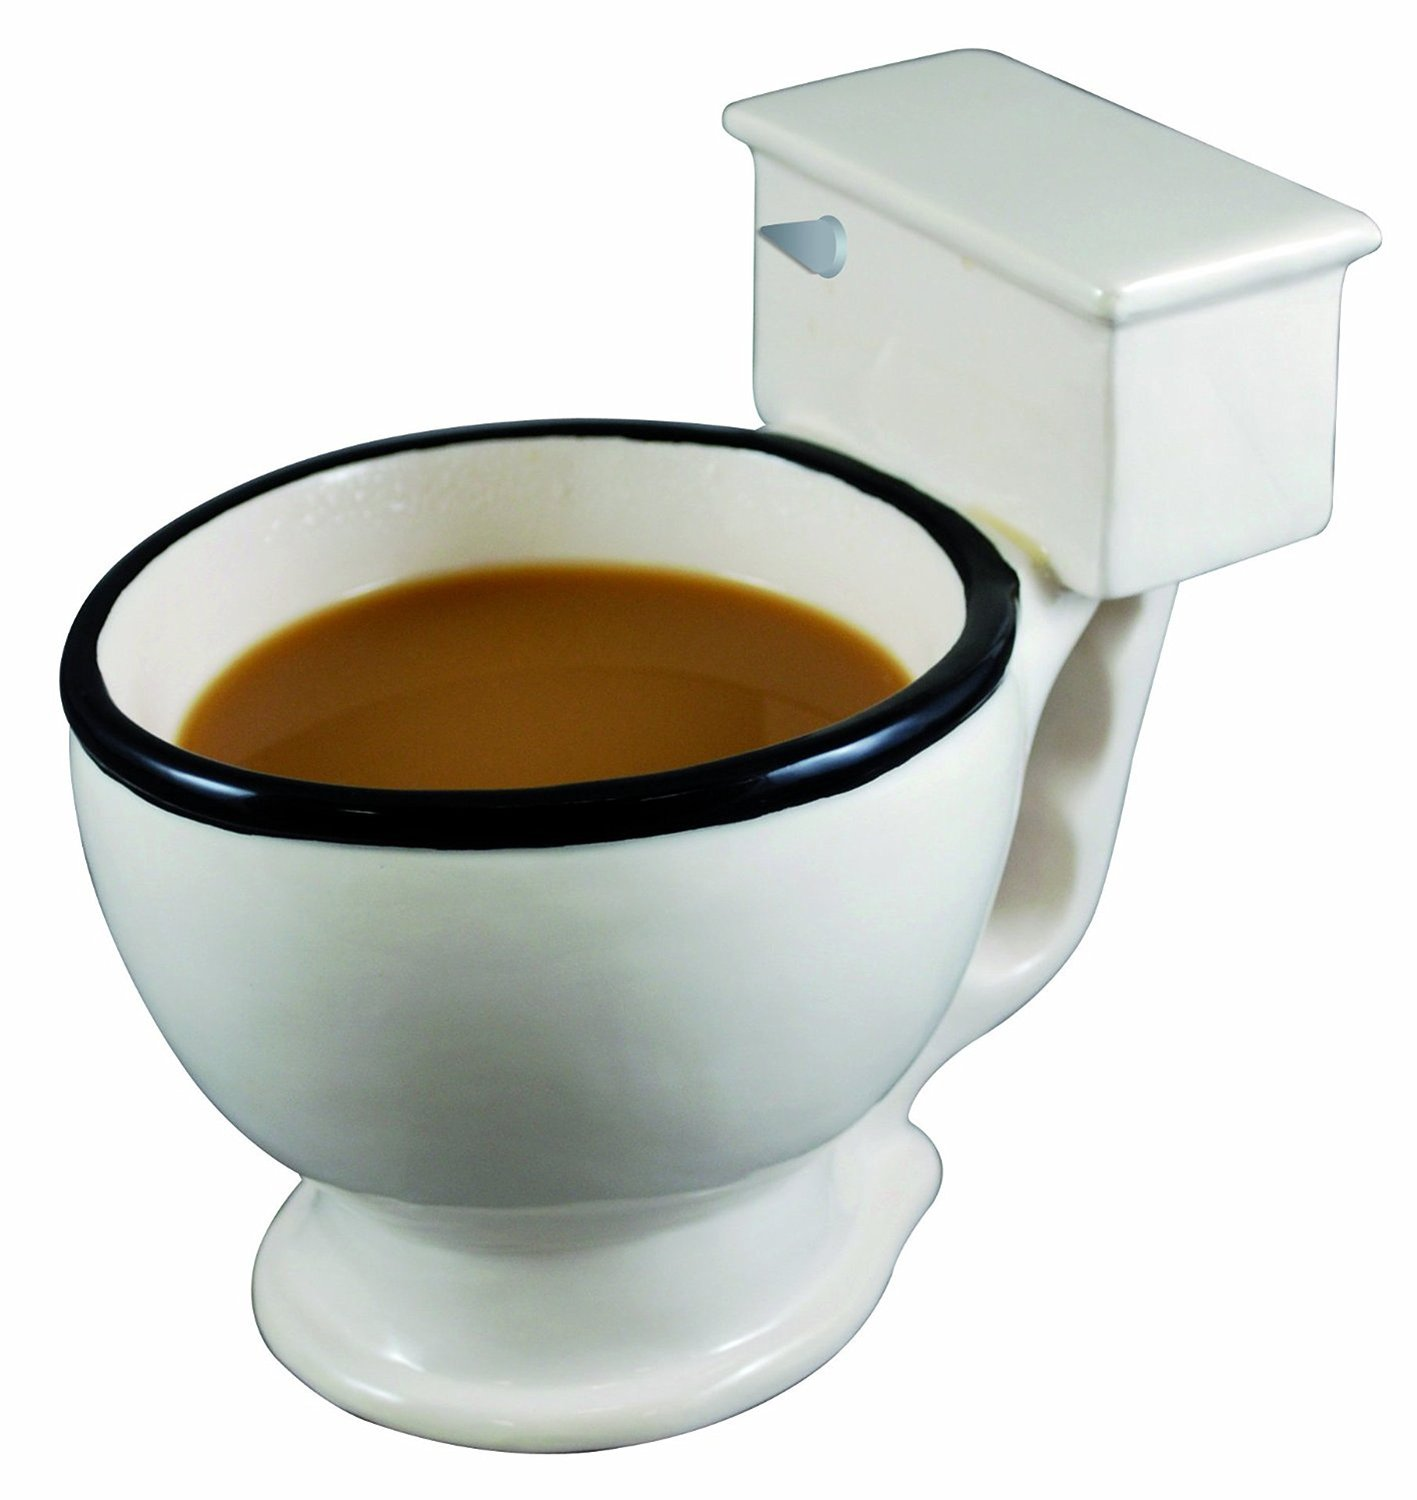 toilet bowl cup